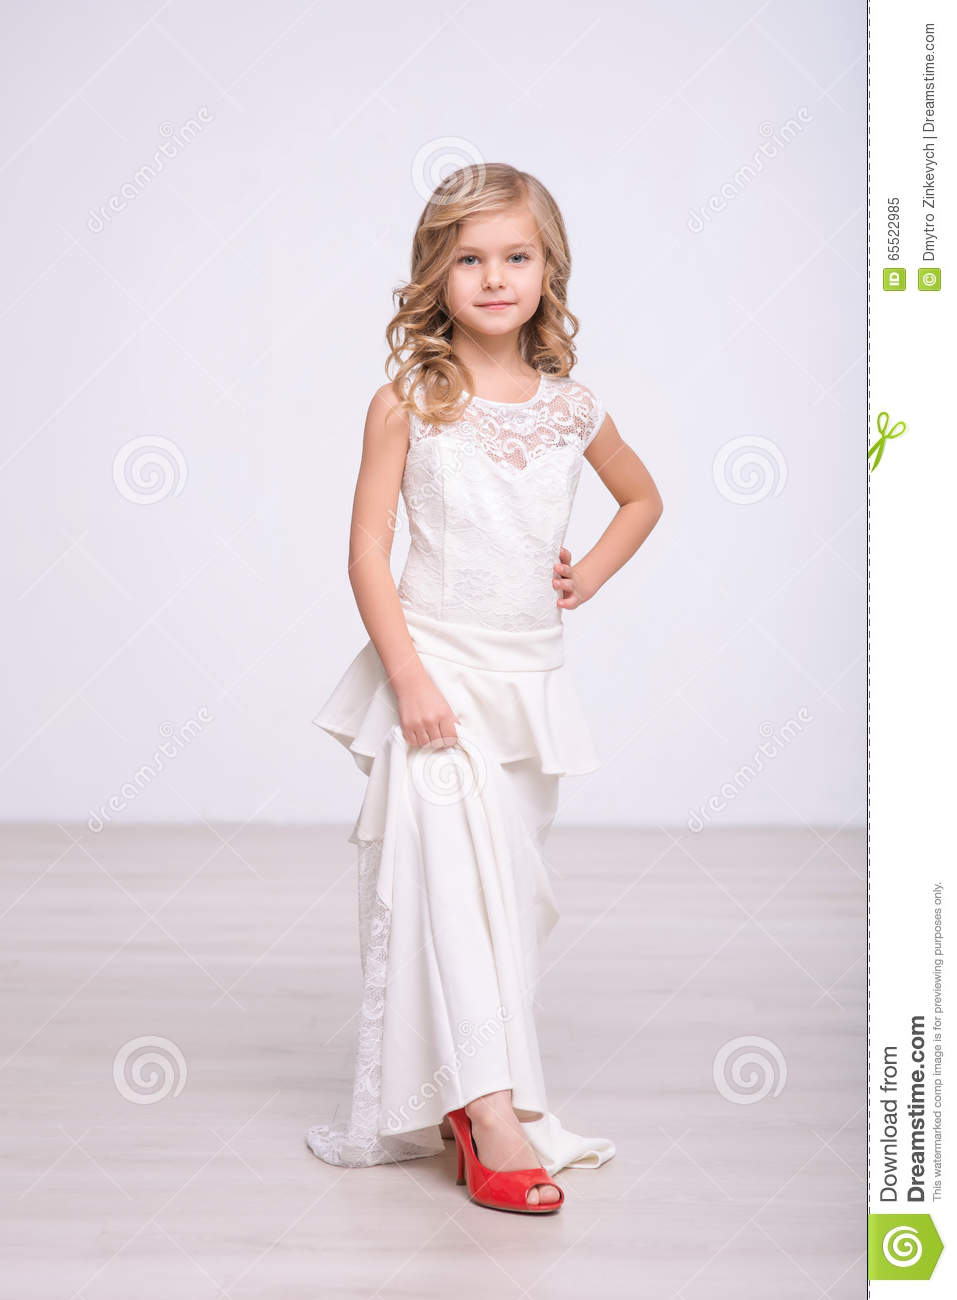 Cute Little Girl Standing In A Wedding Dress Stock Image - Image of ...